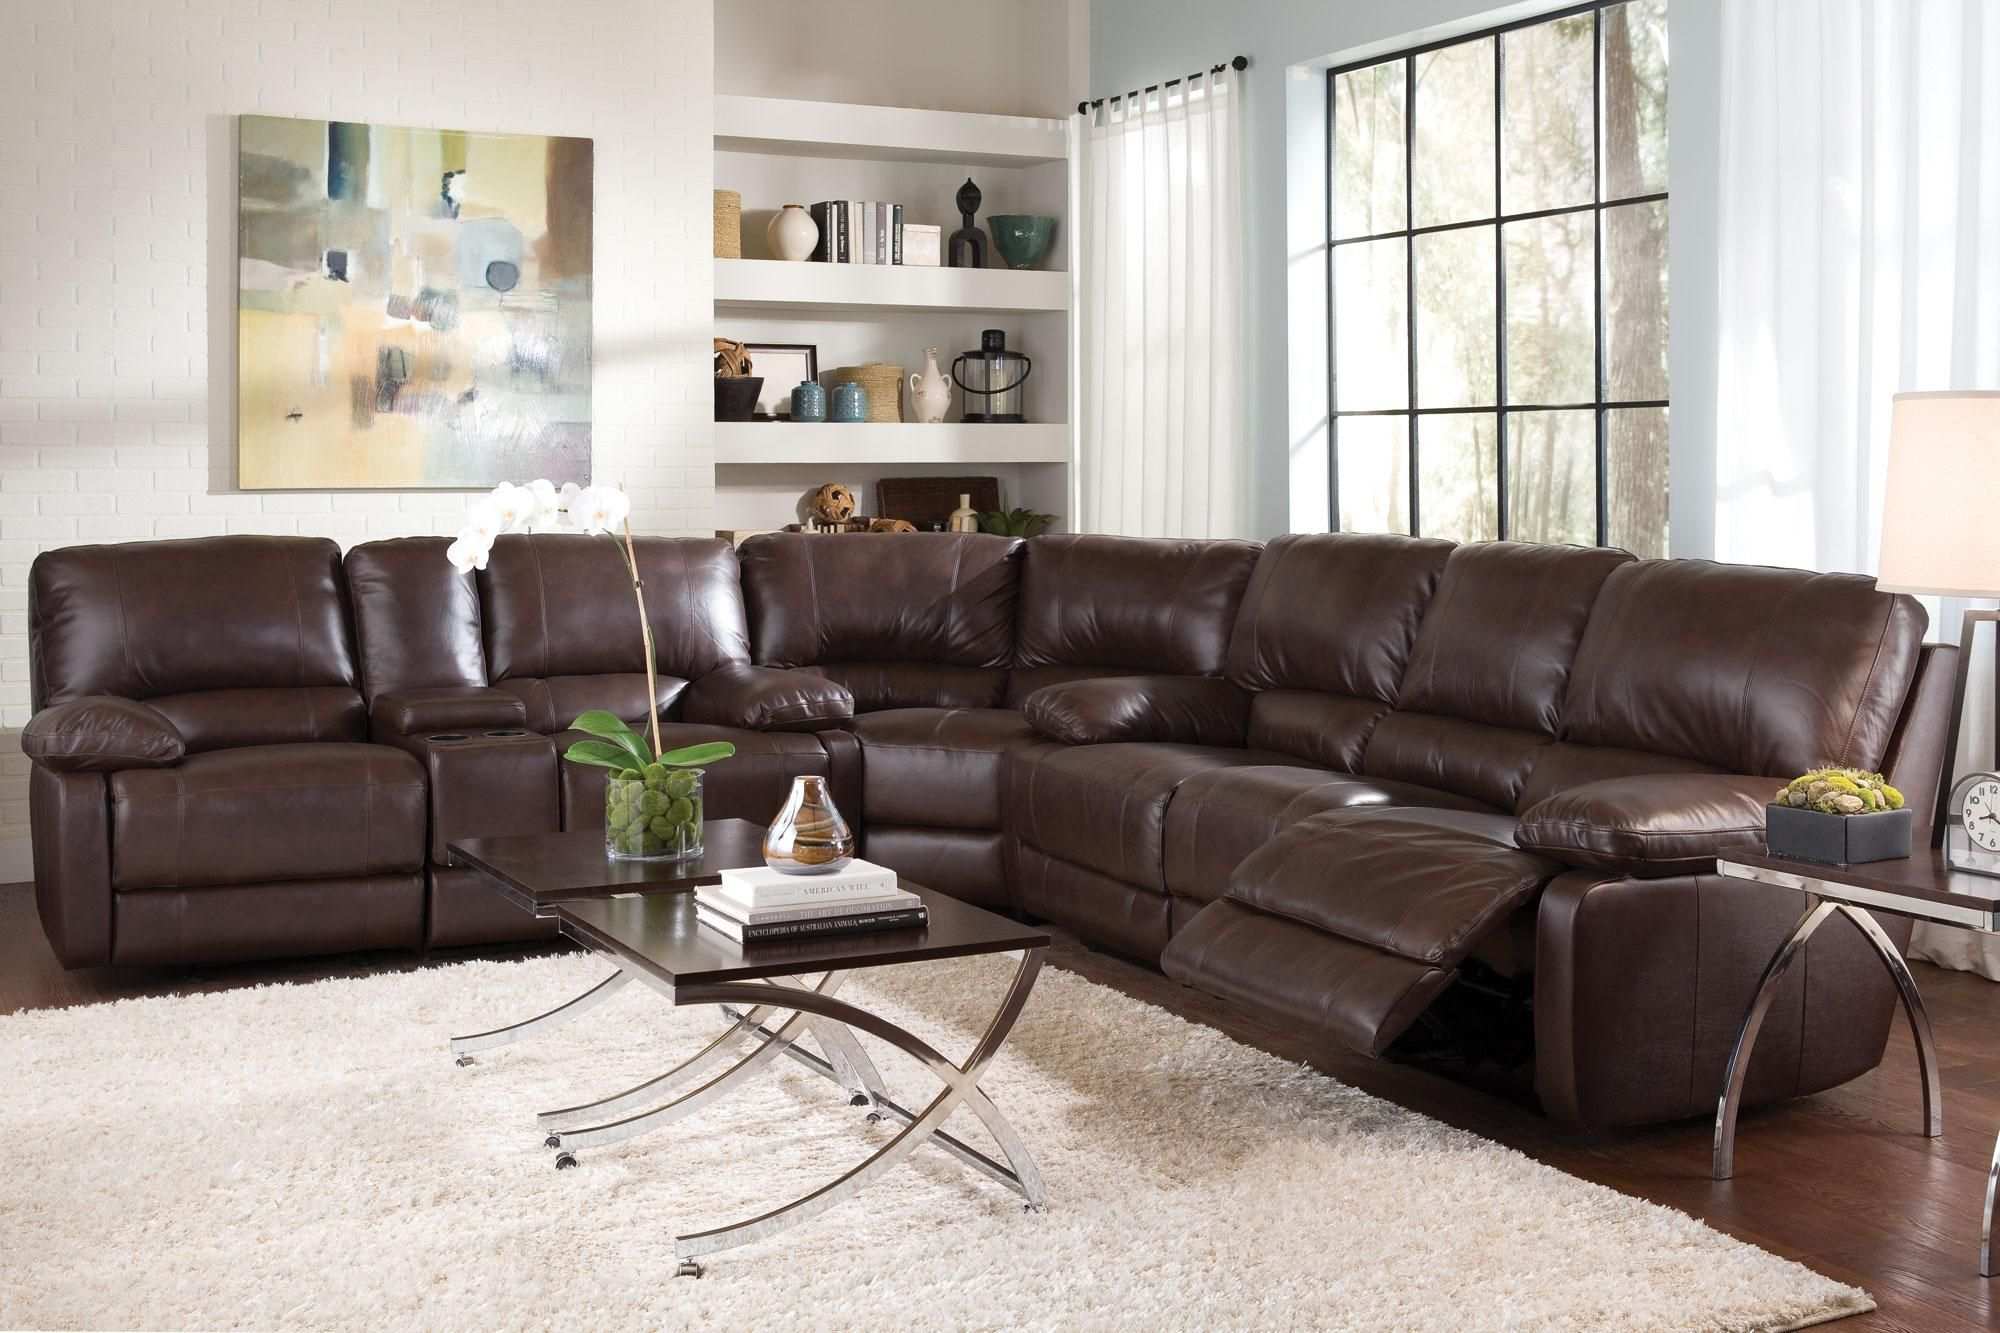 C600021sset Top Grain Leather Sectional It By The Piece Or Entire Set Includes Sofa